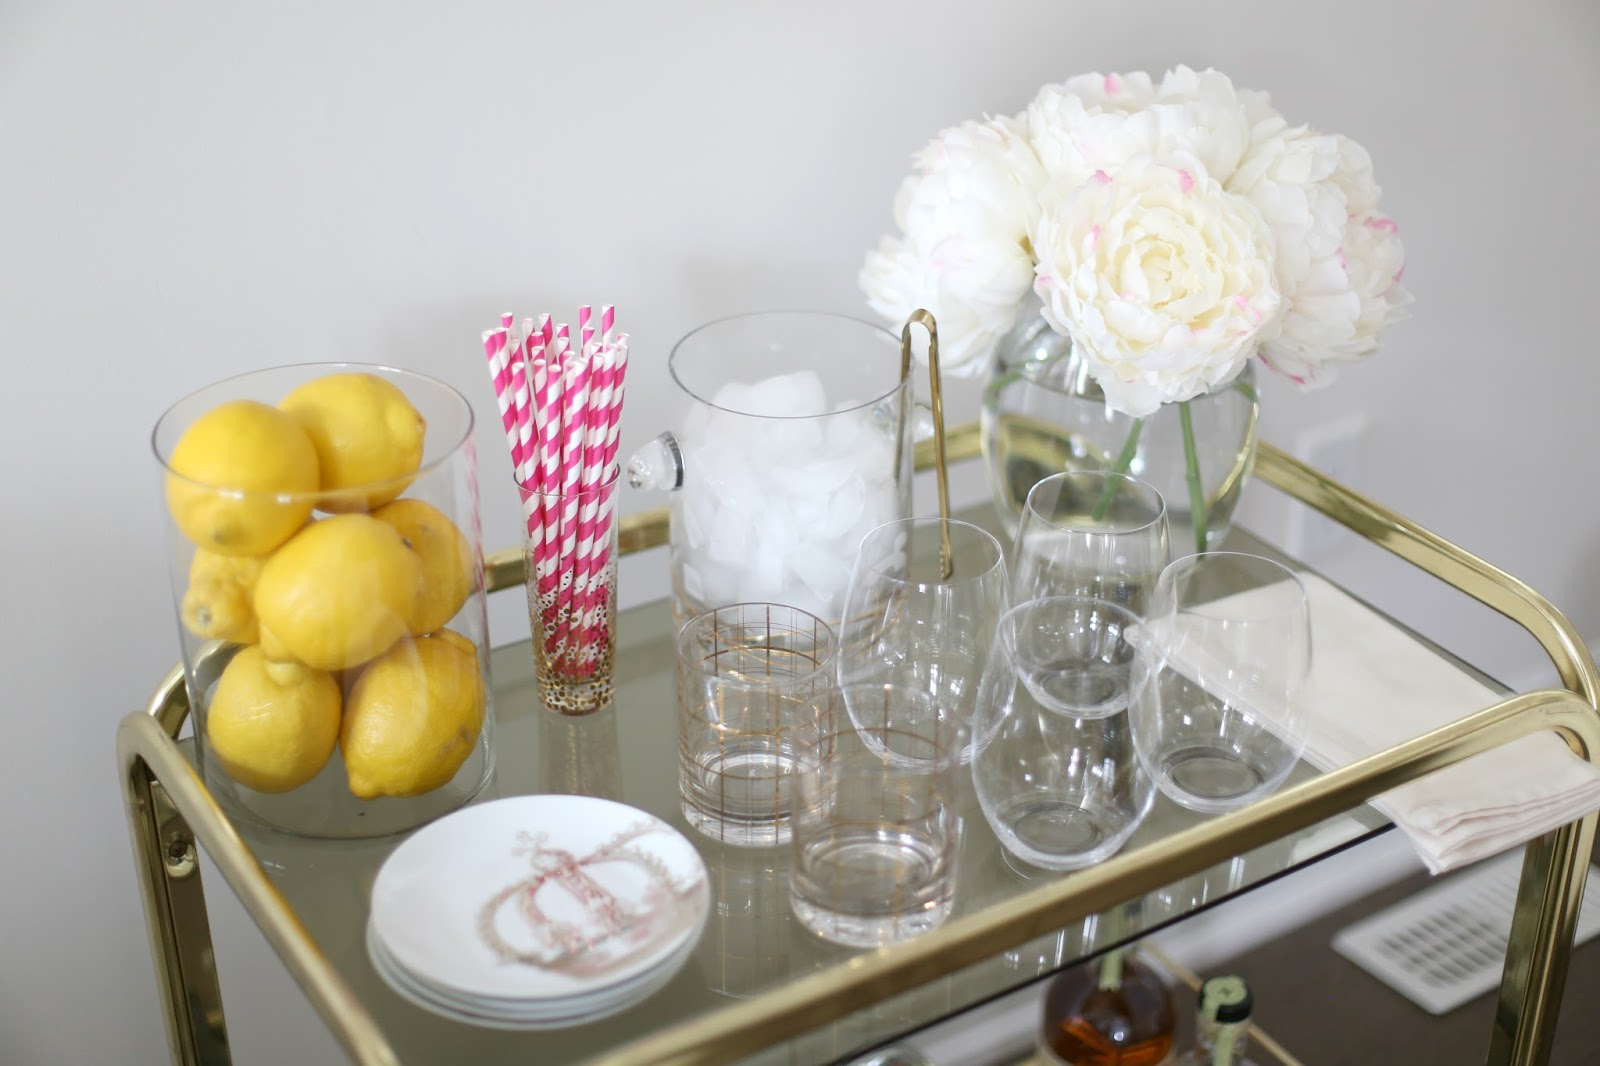 Bar cart styling with pier 1 imports suburban faux pas appetizer plates crown appetizer plate set co pier 1 imports stackable wine rack co pier 1 imports bucket golden waves ice bucket and tong co pier reviewsmspy